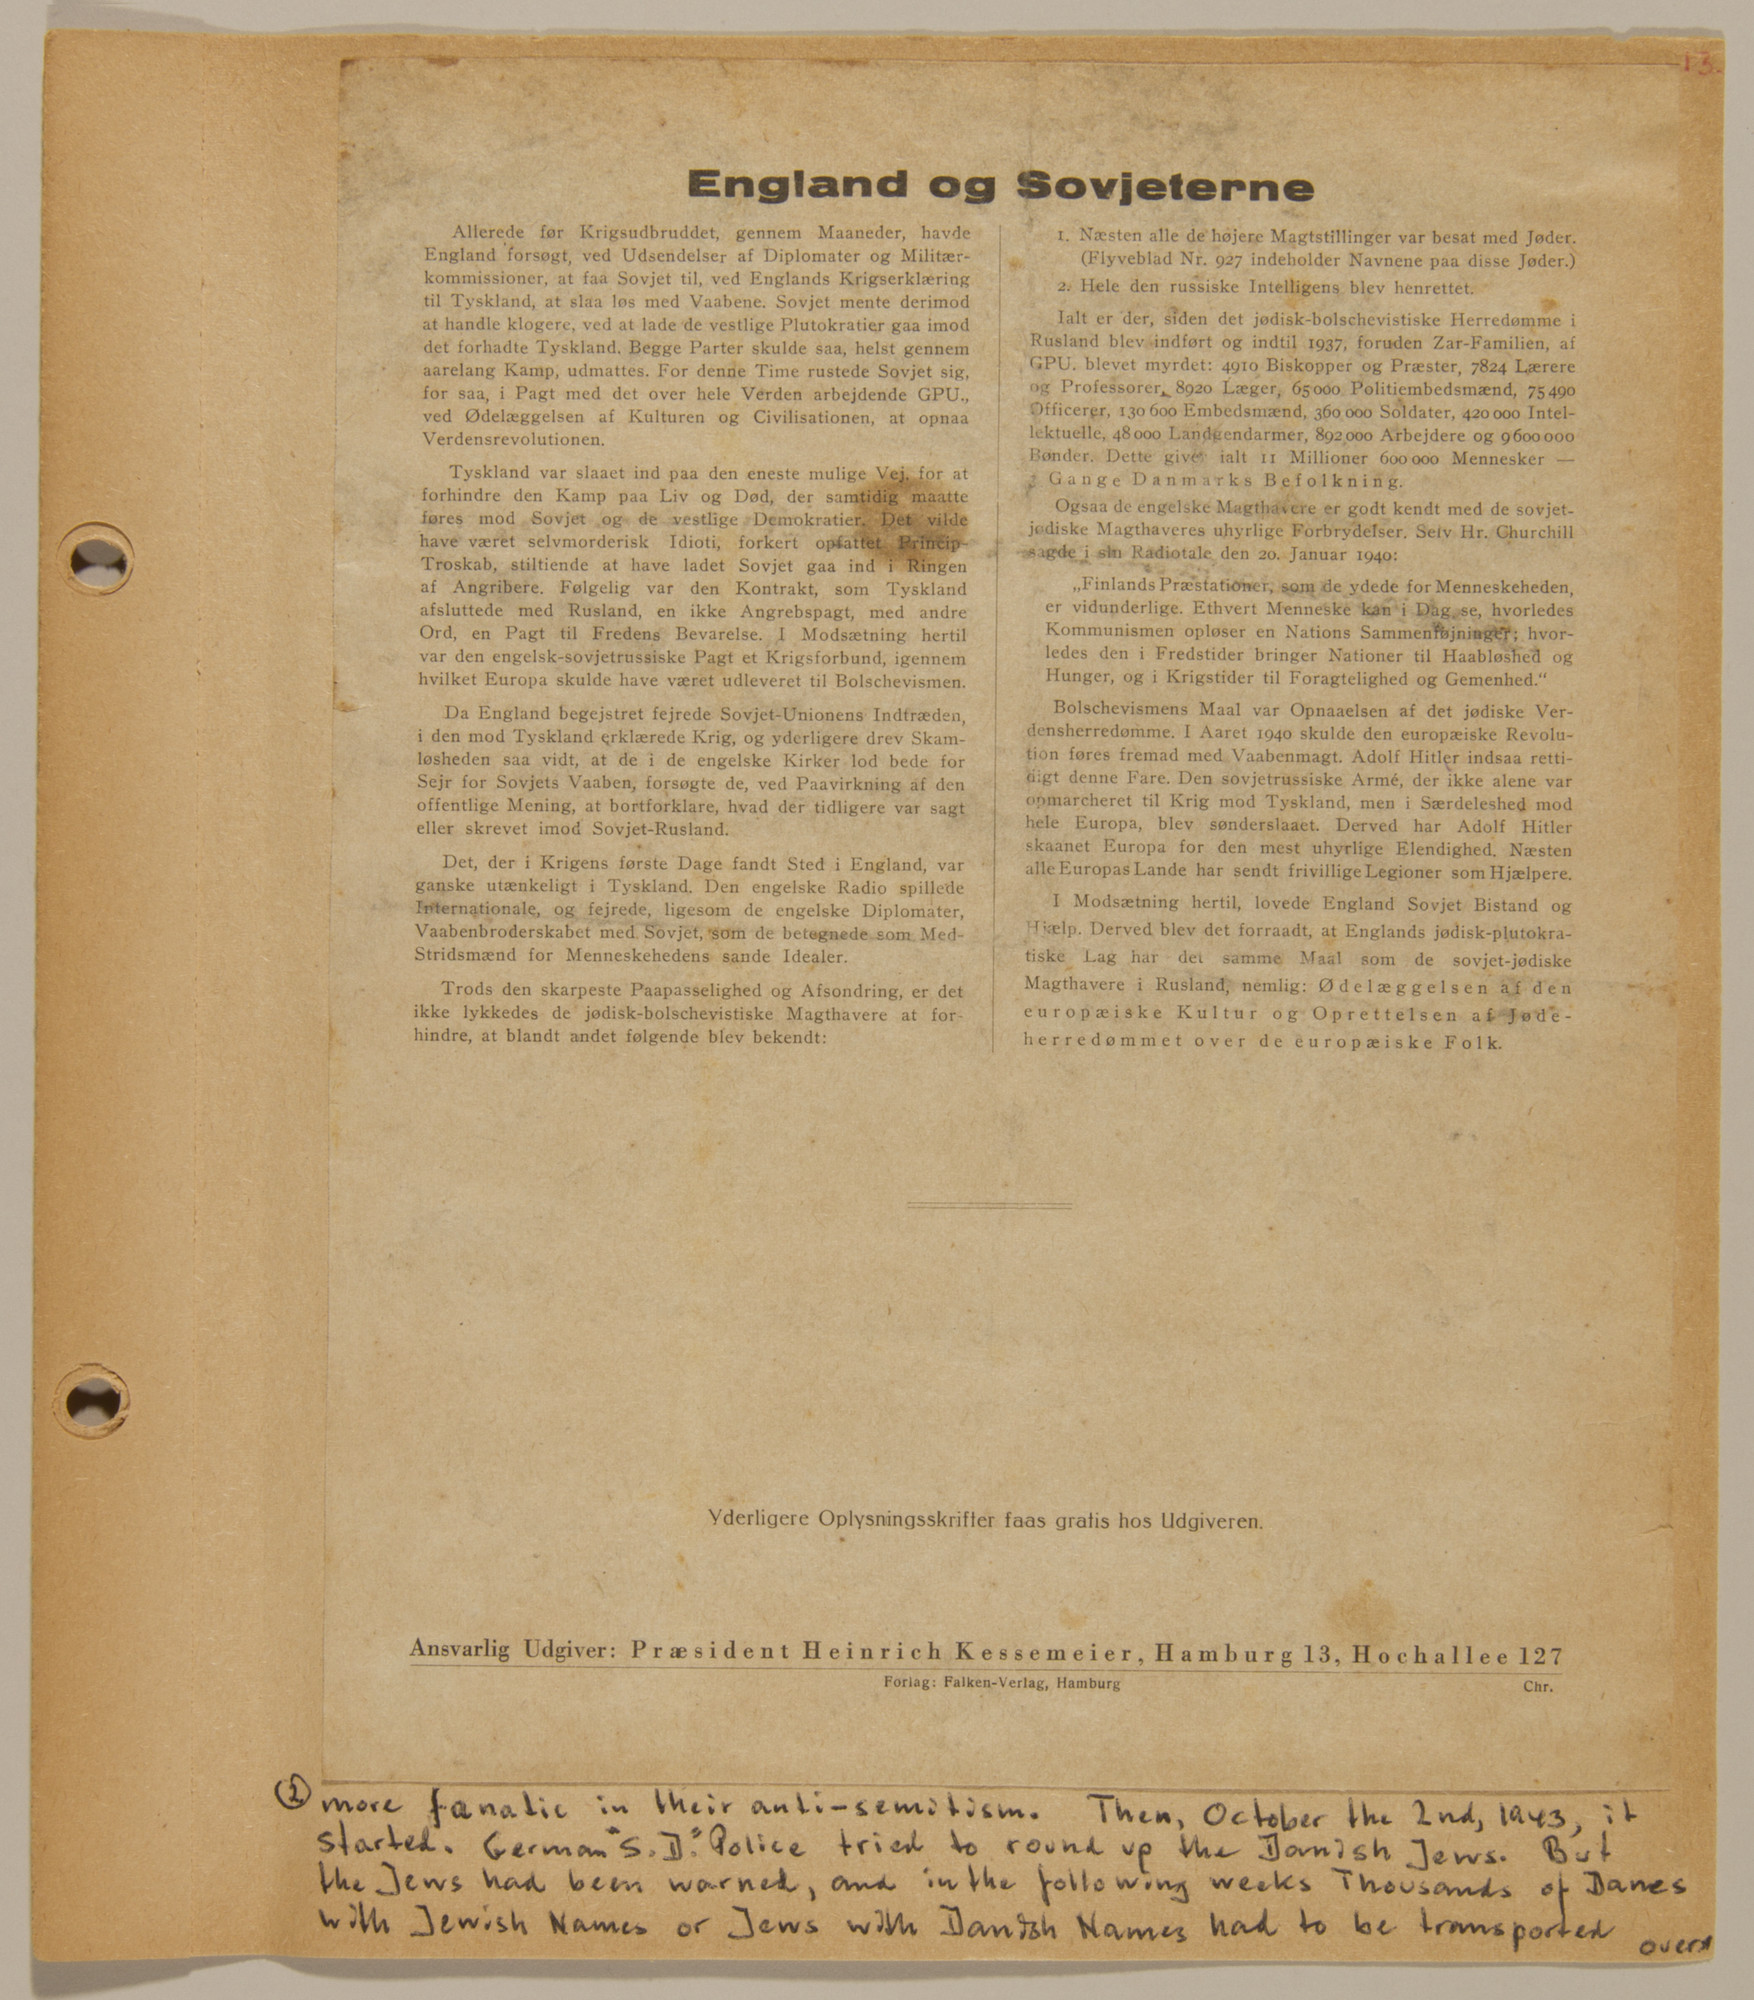 Page from volume four of a set of scrapbooks compiled by Bjorn Sibbern, a Danish policeman and resistance member, documenting the German occupation of Denmark.  This page contains a widely distributed handbilll preparing the Danish people for raids against the Jews by linking them to Soviet Bolshevism.